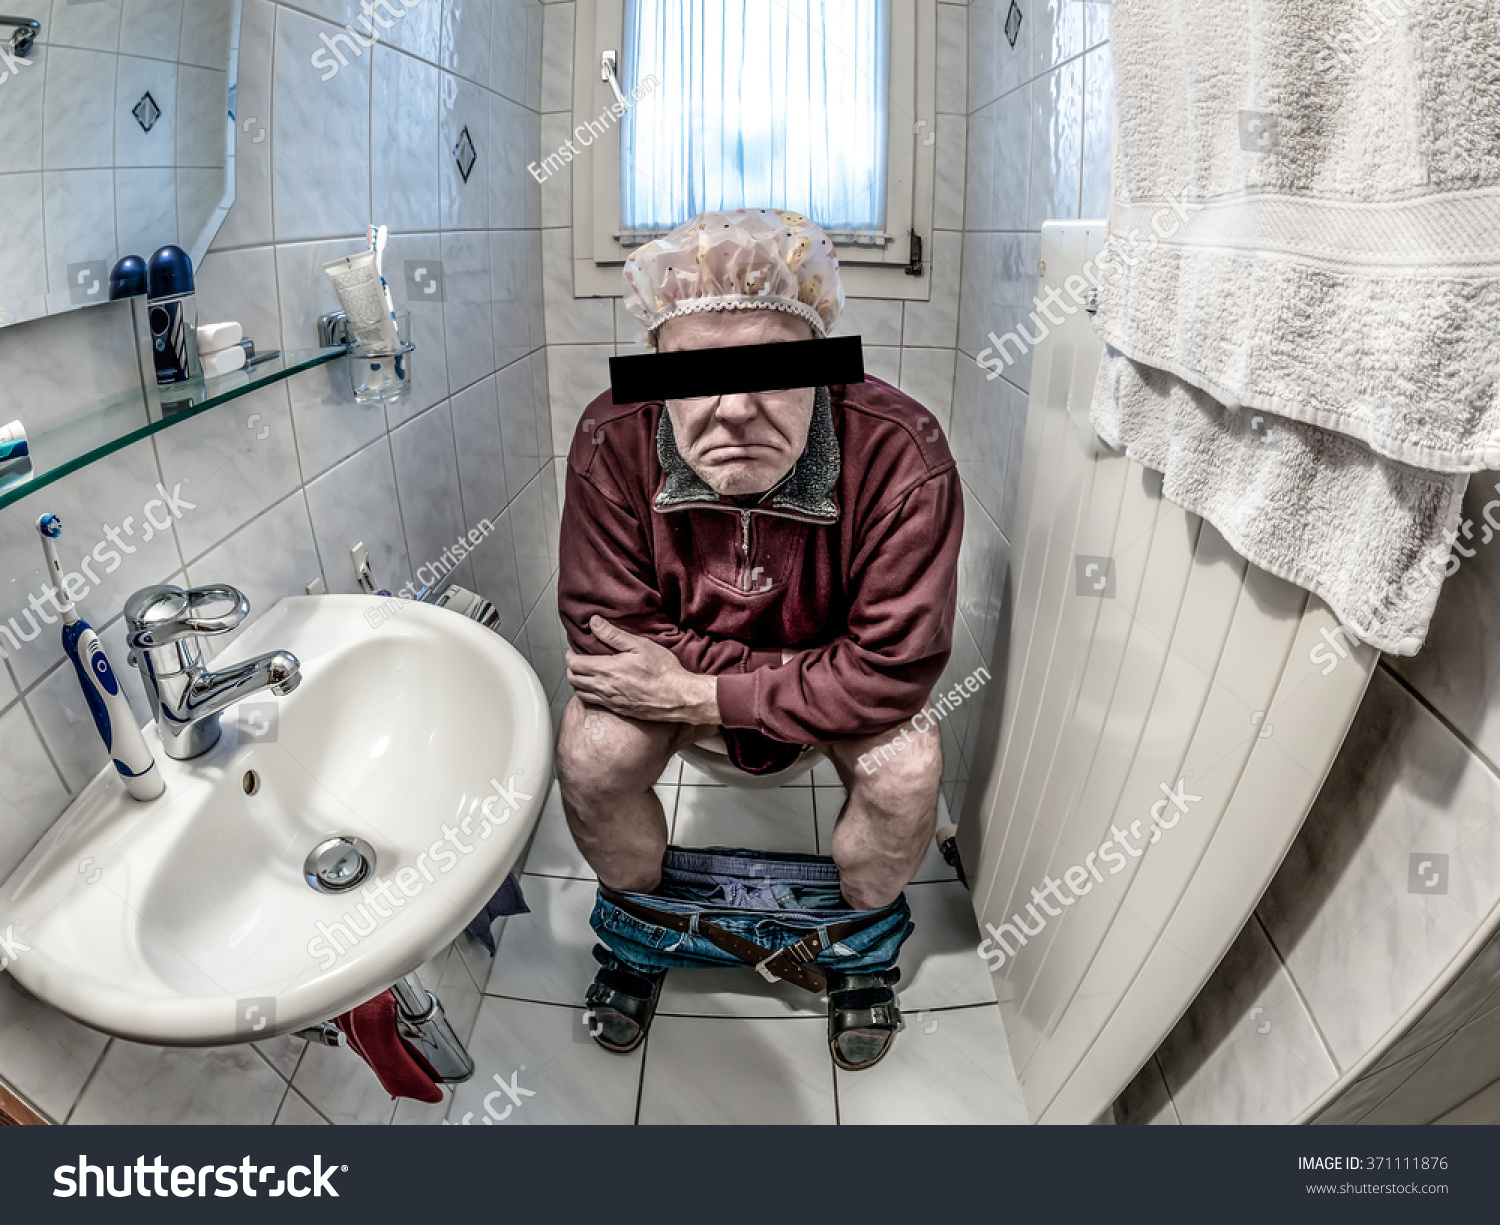 Sitting on toilet constipation diarrhea stock photo - How to use the bathroom when constipated ...